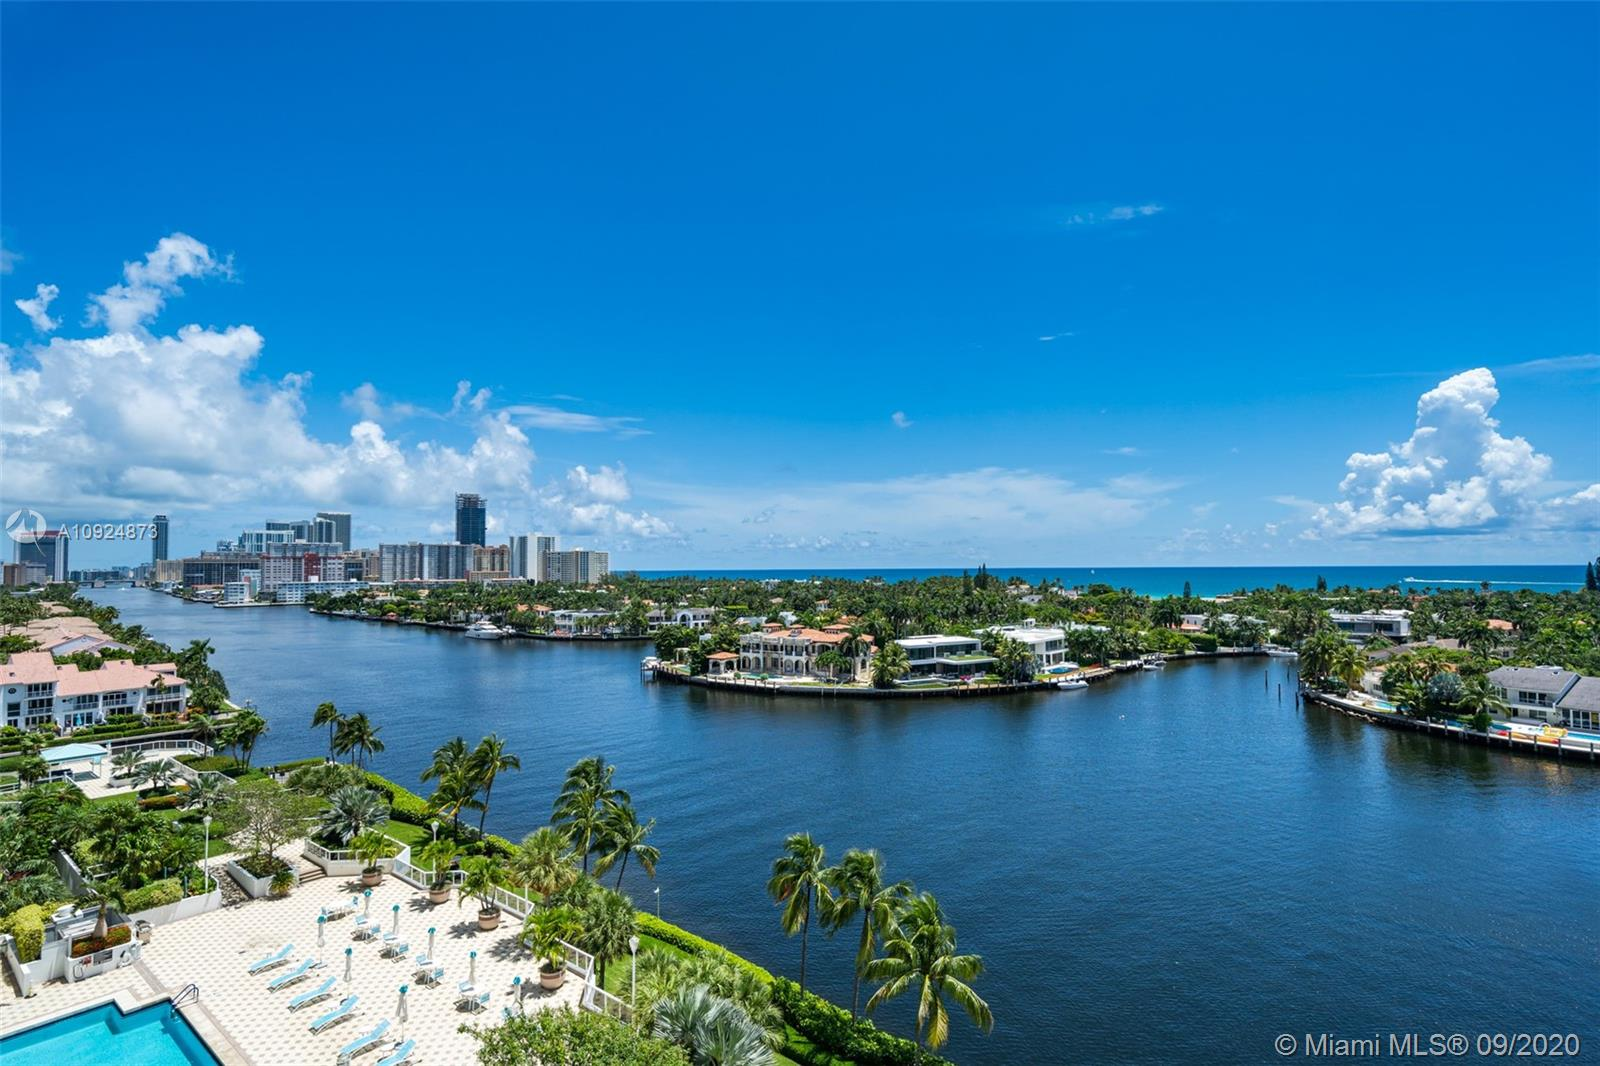 Best kept secret of Aventura! One Island offers only 4 large units per floor with a 5 star service and amenities; 2 pools, tennis courts, café, gym and spa. Amazing bright 3b, 2 bath unit with a large wraparound balcony. Astonishing unobstructed intracoastal, ocean views. Fully renovated in 2017; Impact windows, open kitchen with Bosch and Samsung appliances, beautiful floor, new AC, surveillance cameras, blinds/blackouts fully operated by phone or iPad, bluetooth system and more... 2 parking spots and exterior storage for suitcases, bikes etc...